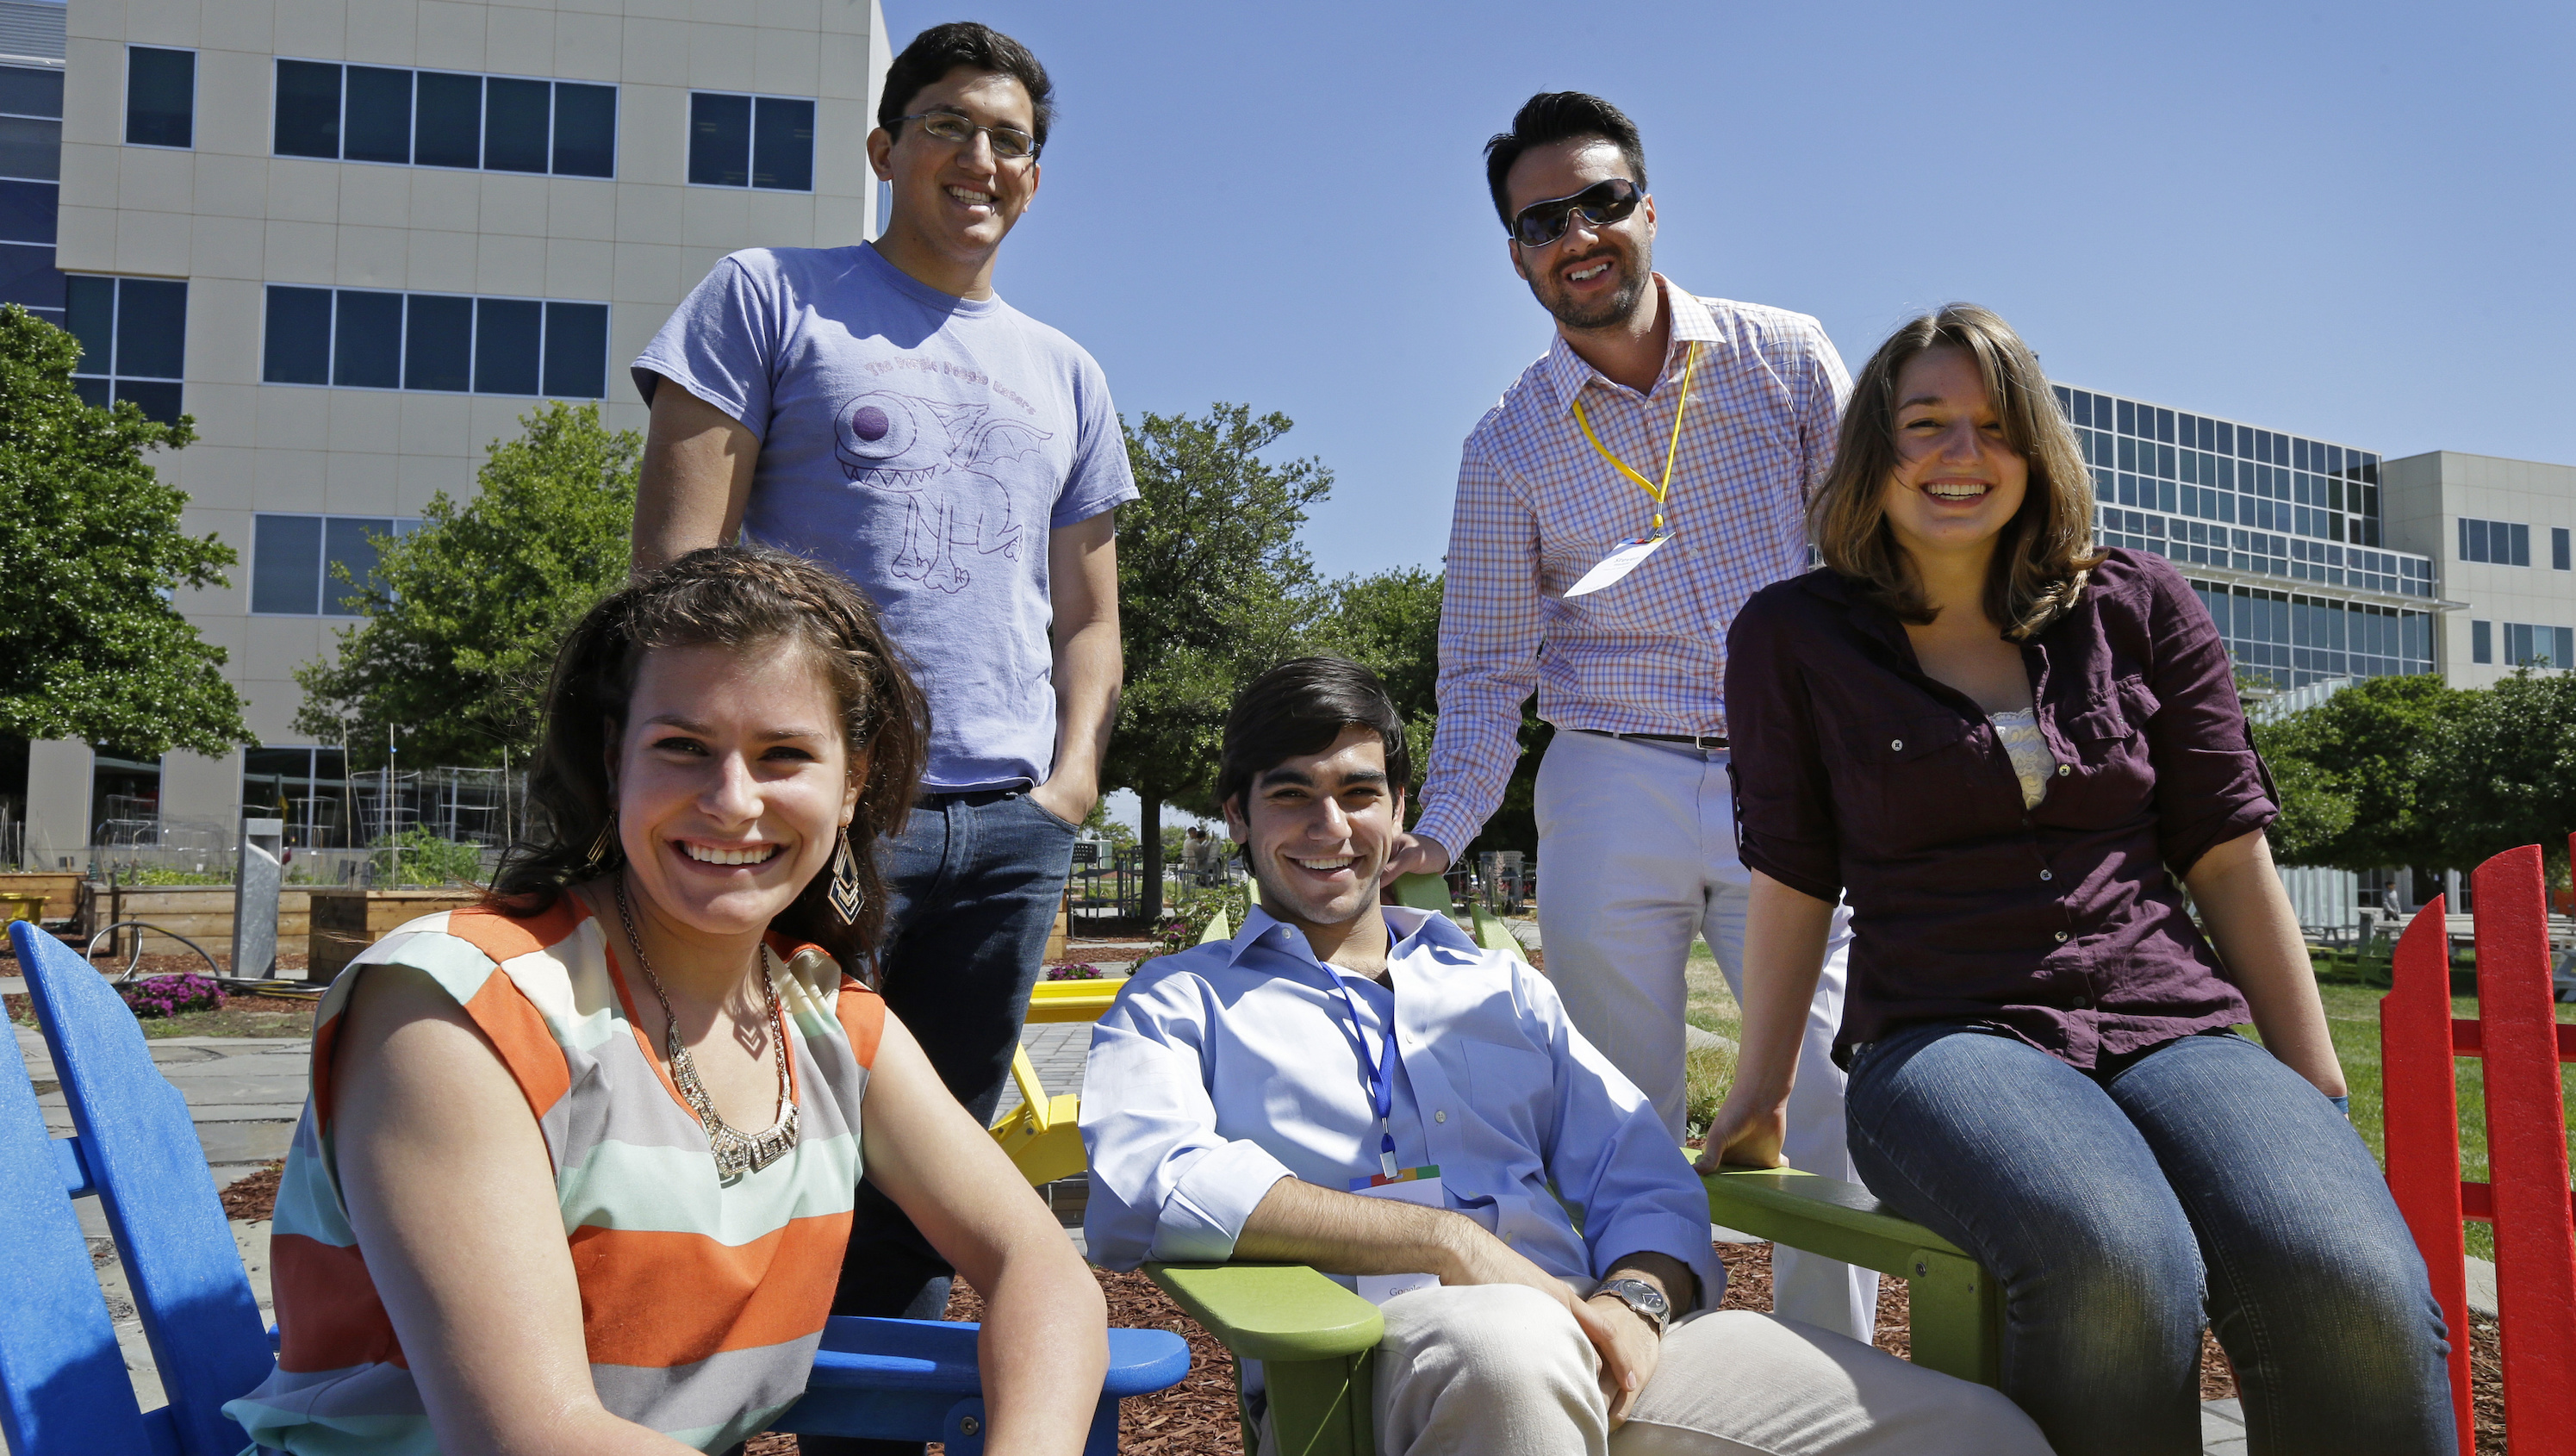 These Google interns may be smiling, but hard work is their reality.